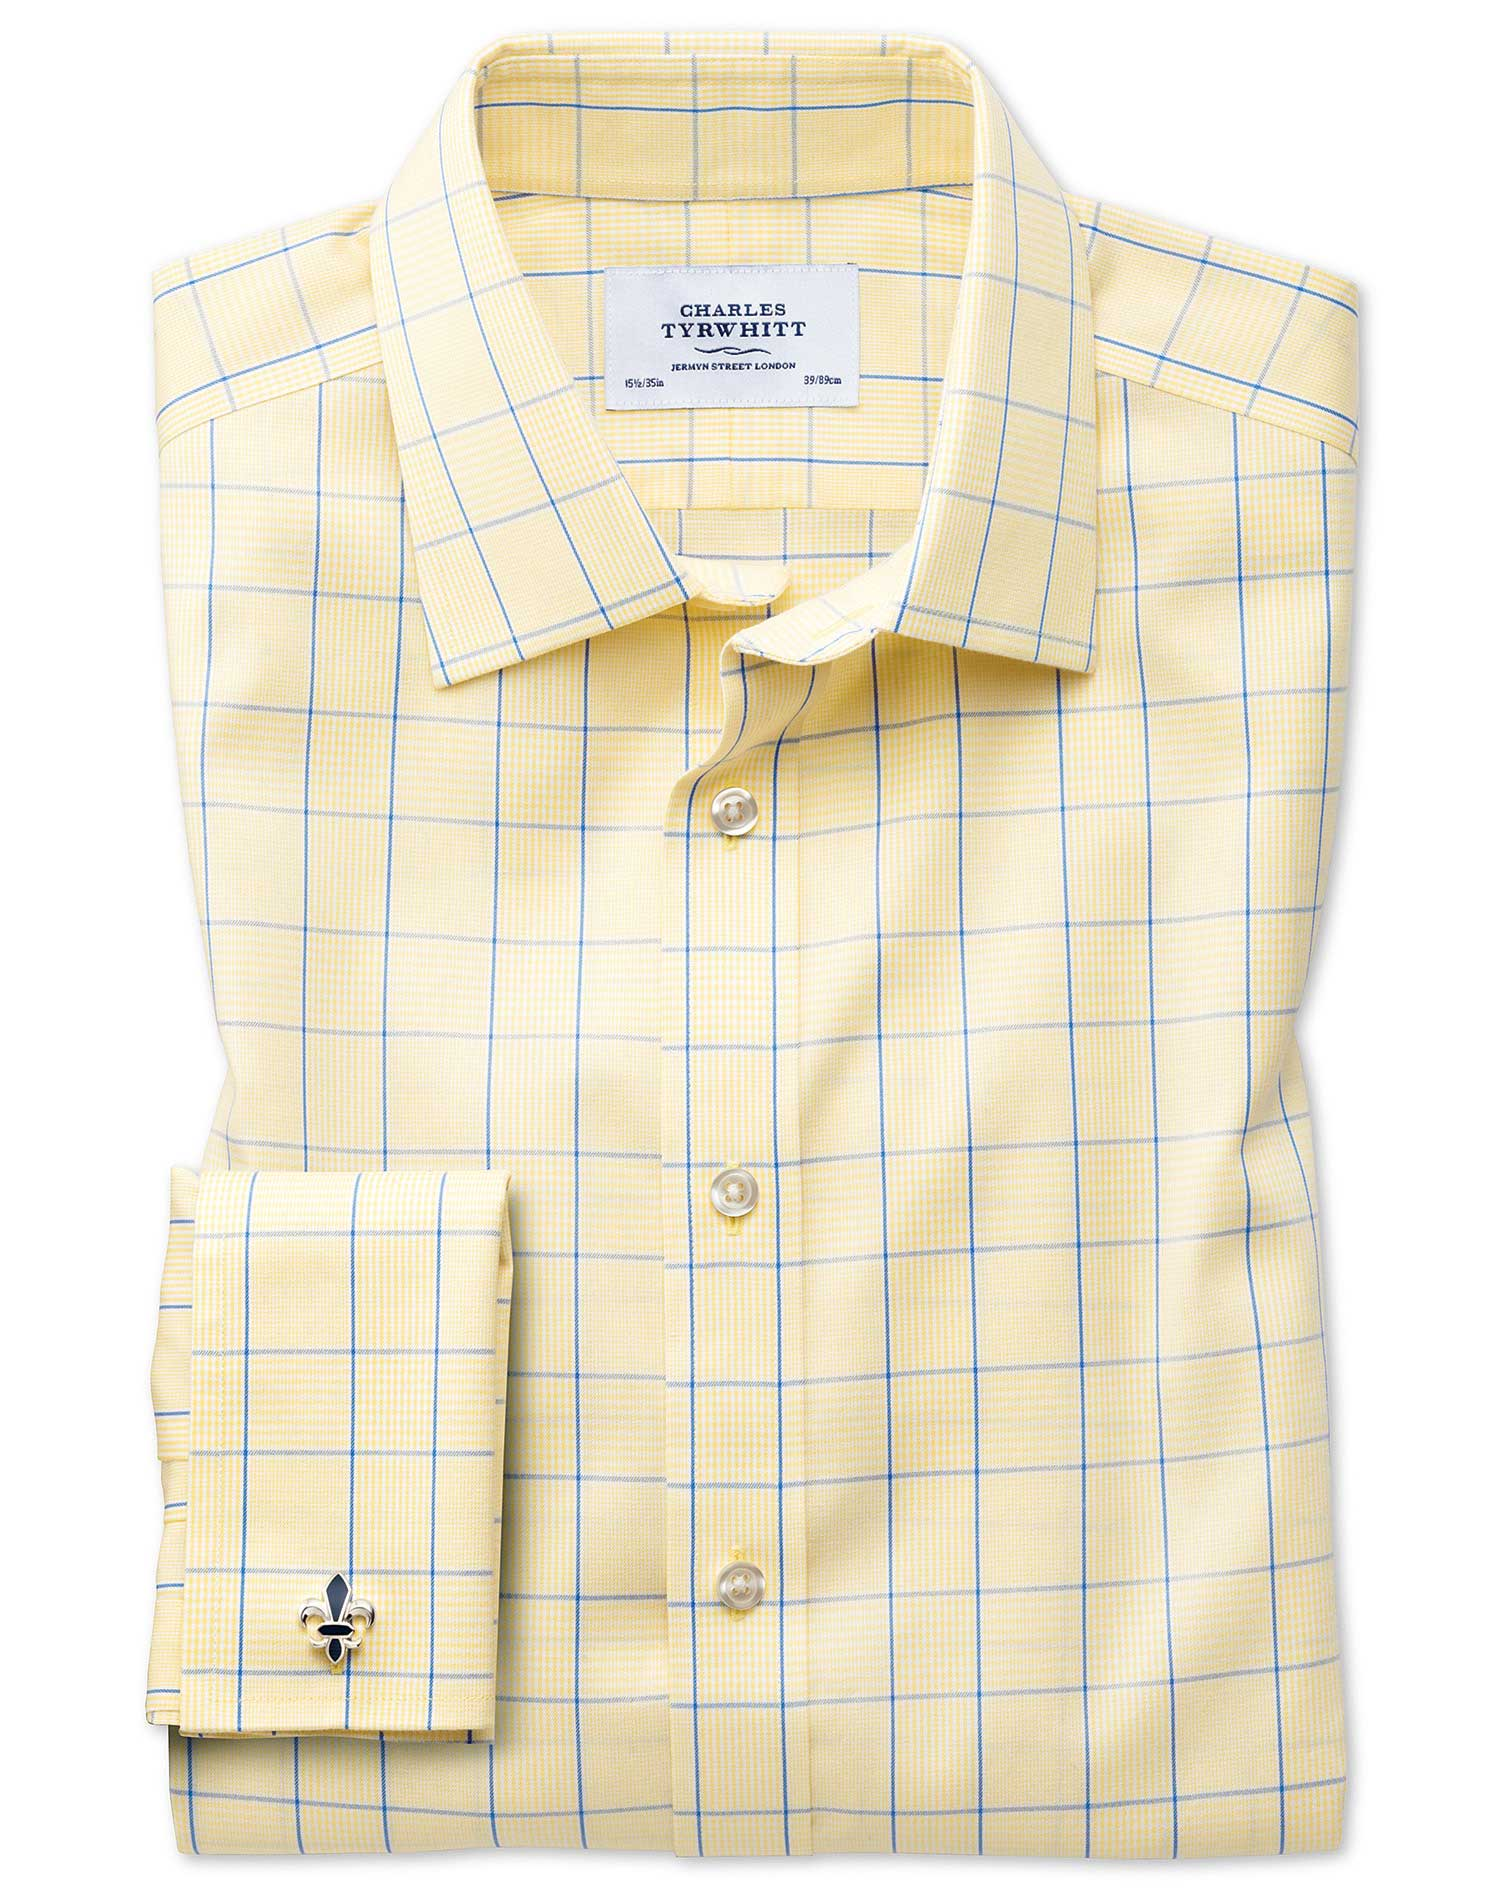 Slim Fit Non-Iron Prince Of Wales Yellow and Royal Blue Cotton Formal Shirt Single Cuff Size 16/38 b